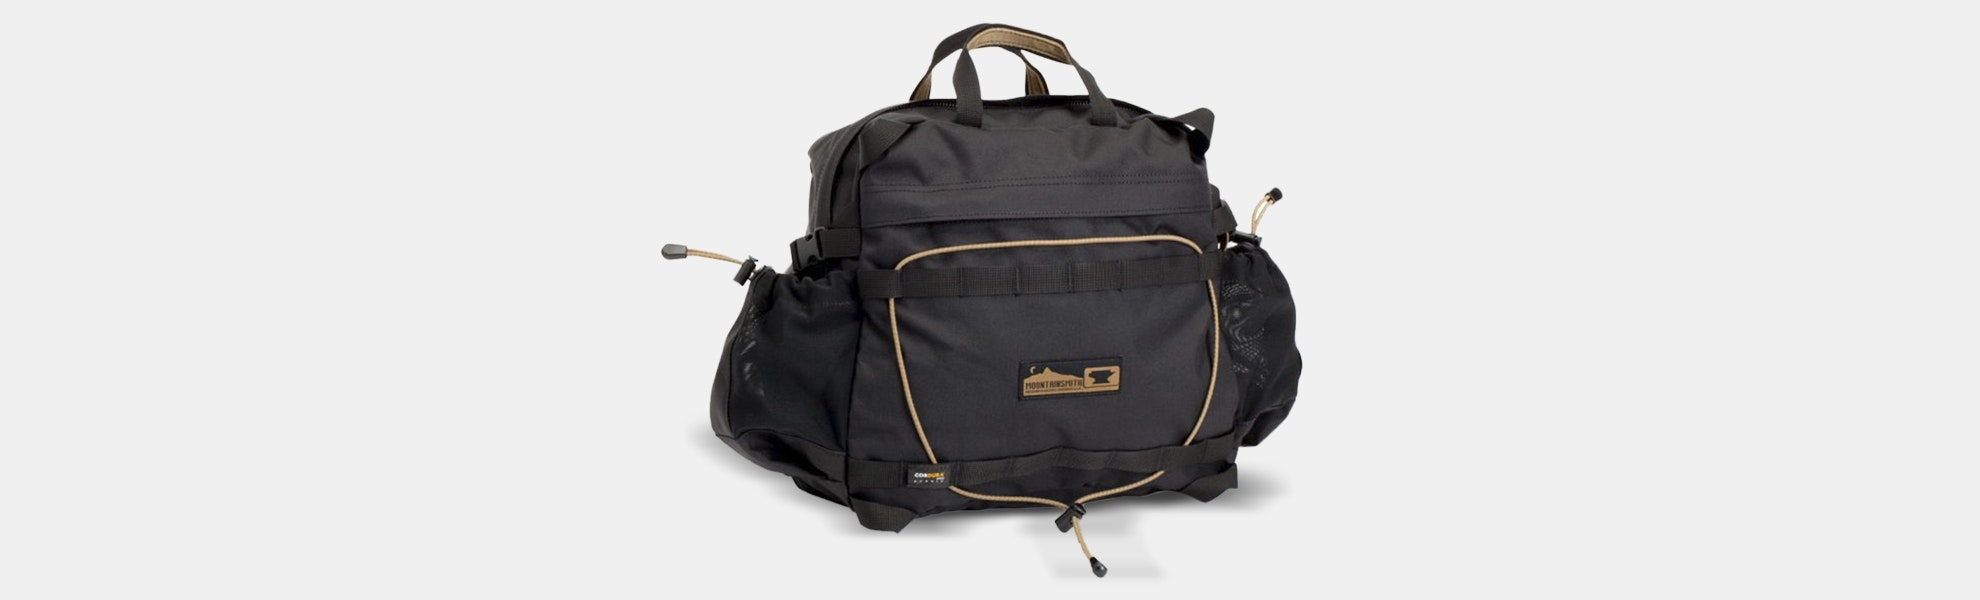 Mountainsmith Tanack 10 Photography Bag